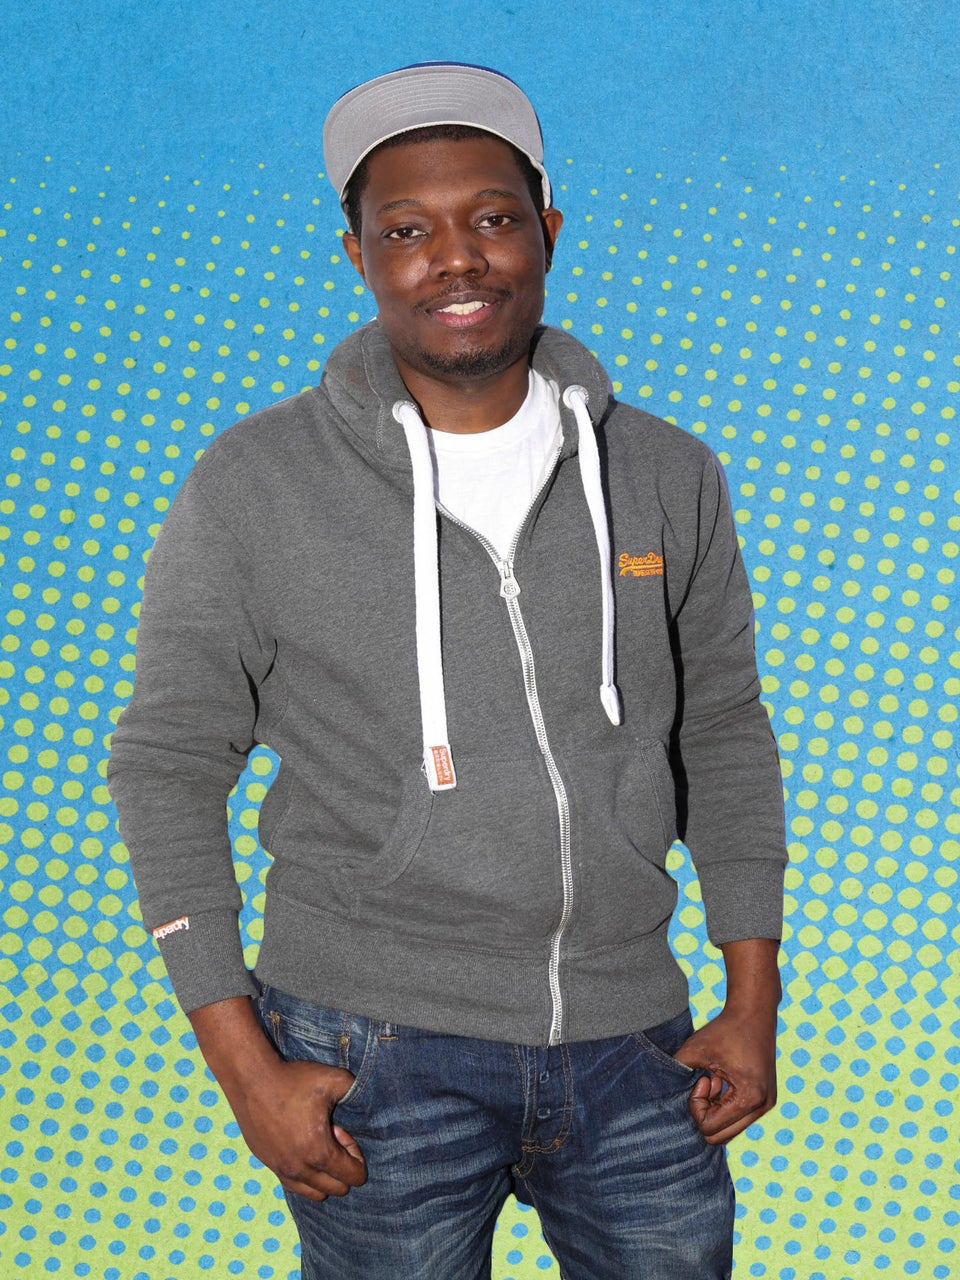 'SNL' Star Michael Che Makes Controversial Comments on Street Harassment Video